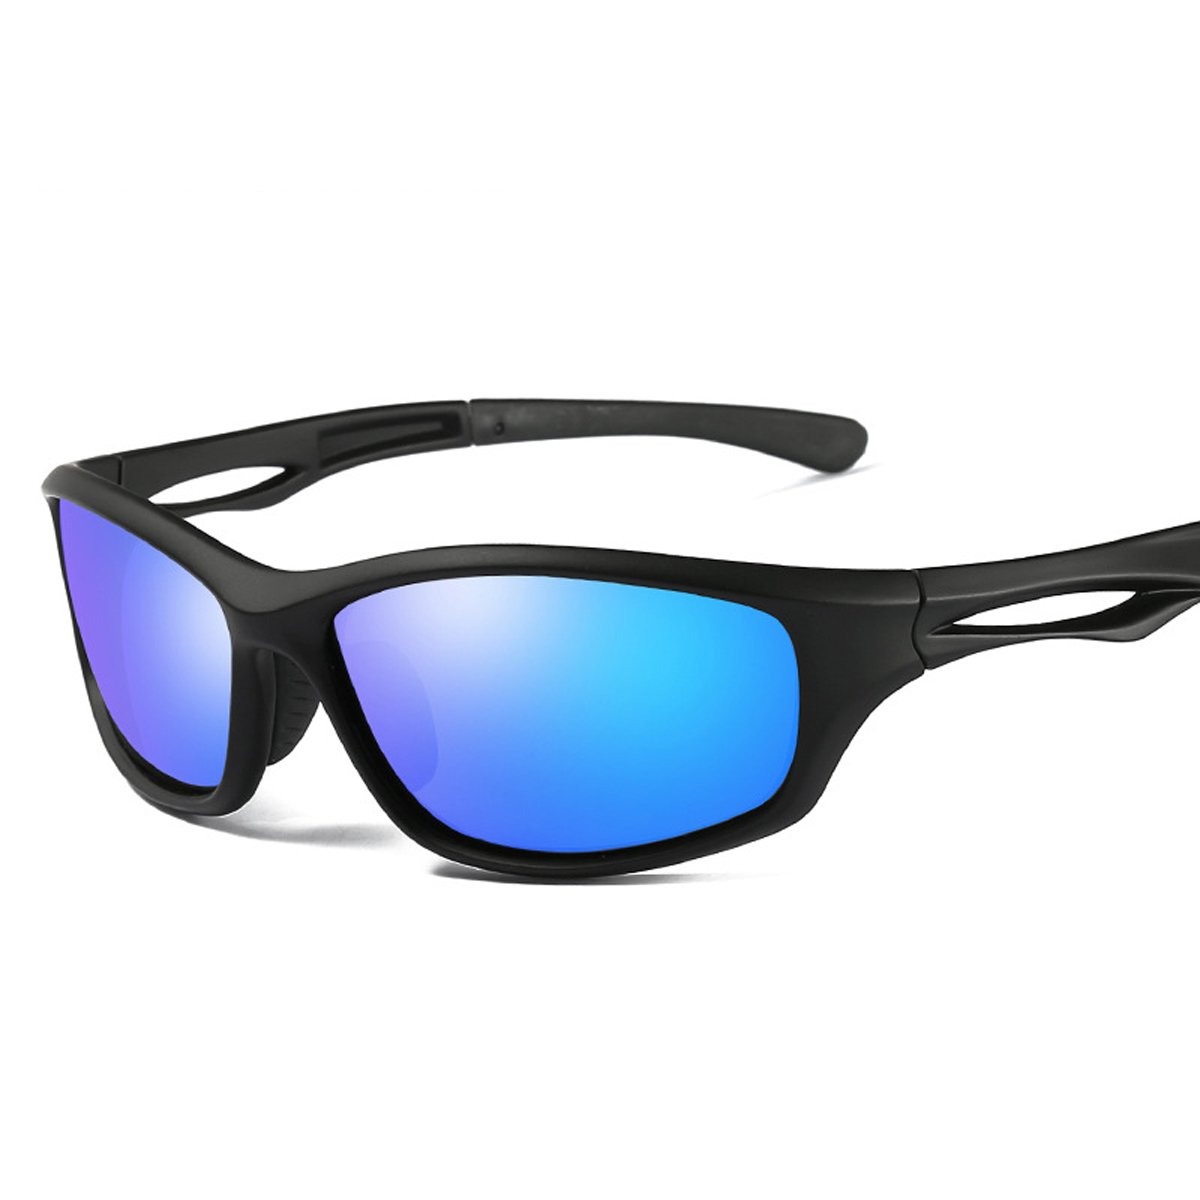 GUVIVI ユニセックスアダルト B077RRNTND Black Matte Frame With Blue Lens Black Matte Frame With Blue Lens